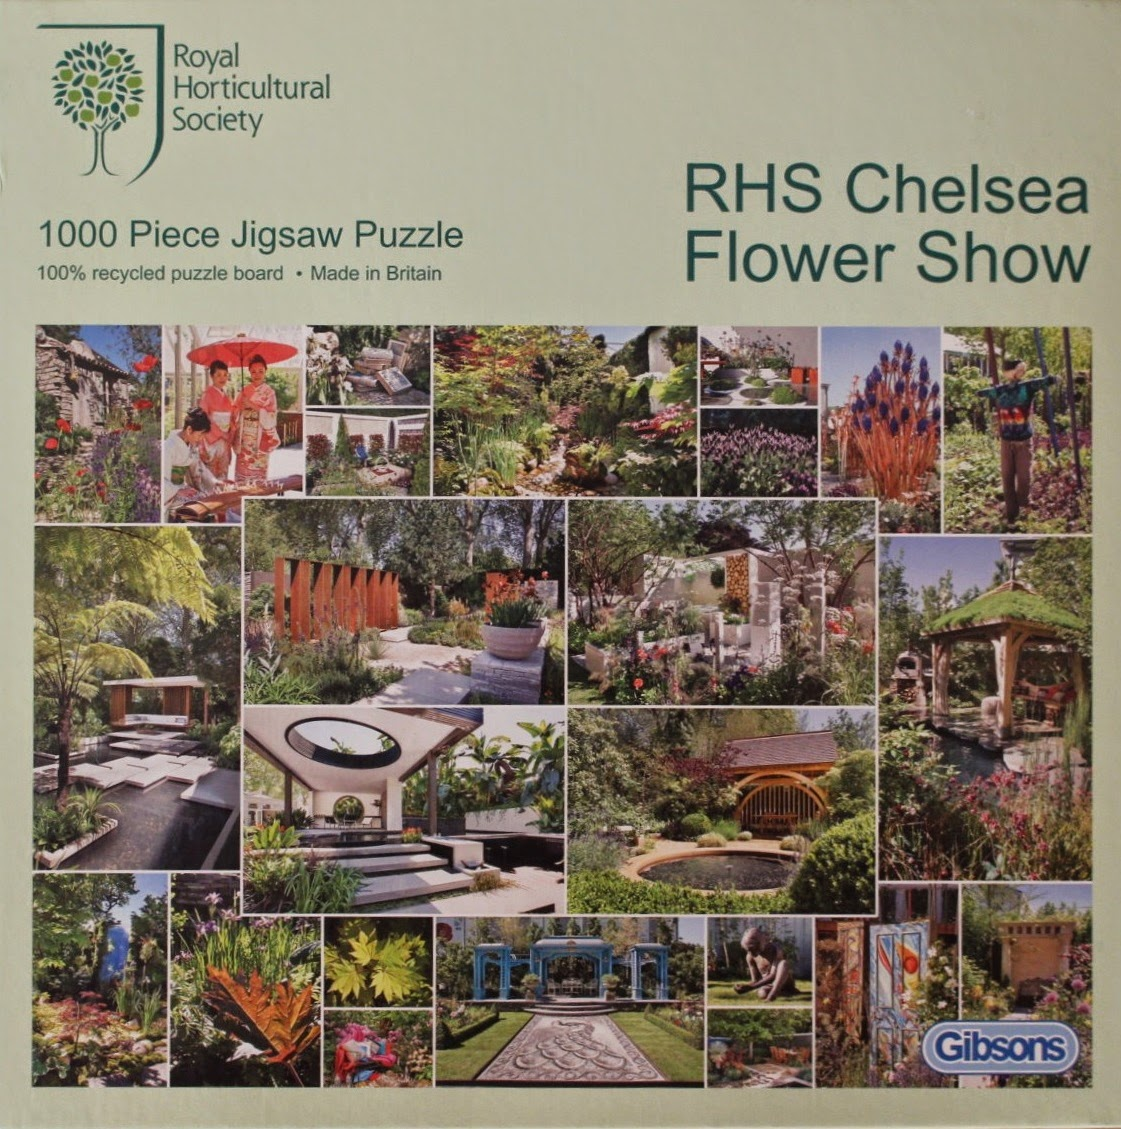 Photo of the 2010 Chelsea Flower Show jigsaw puzzle box